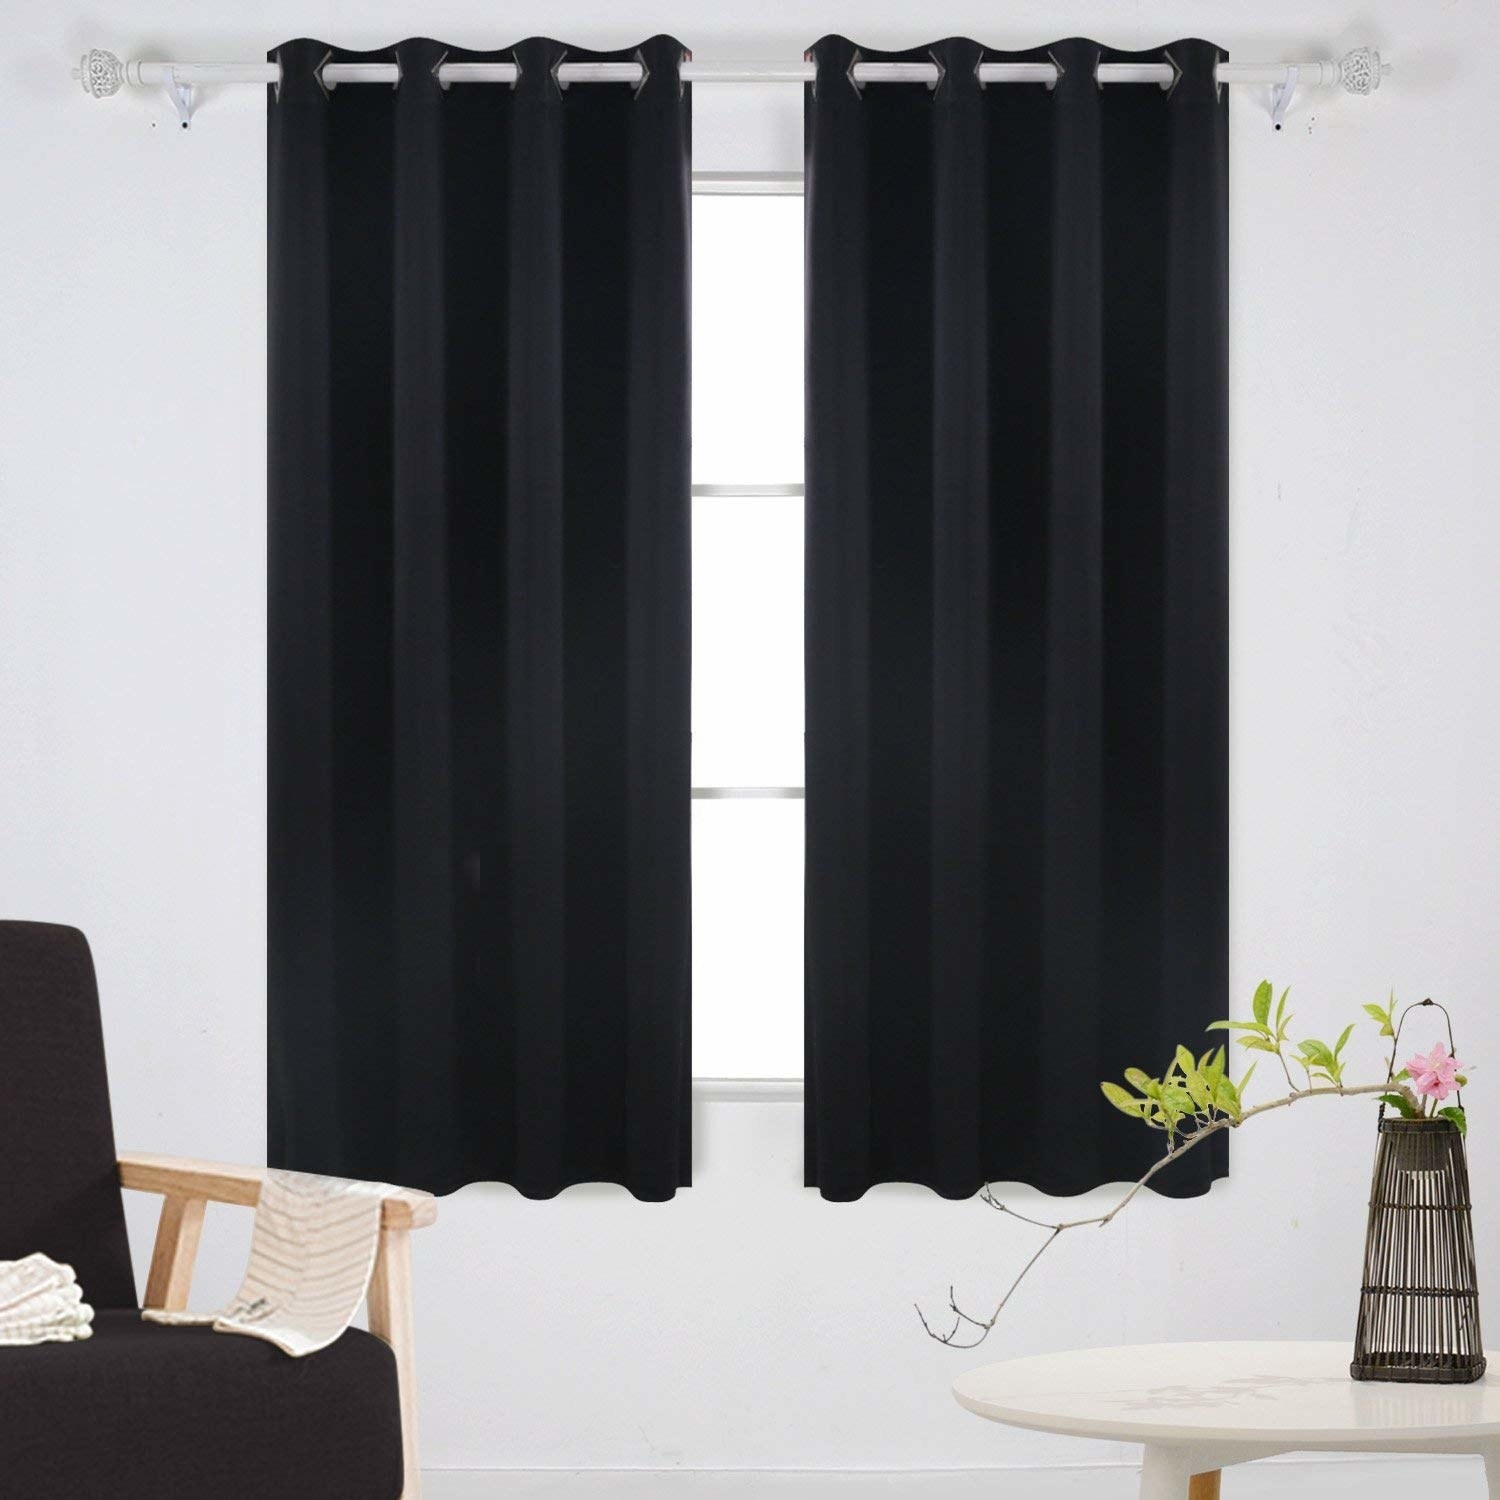 the blackout curtains on a window